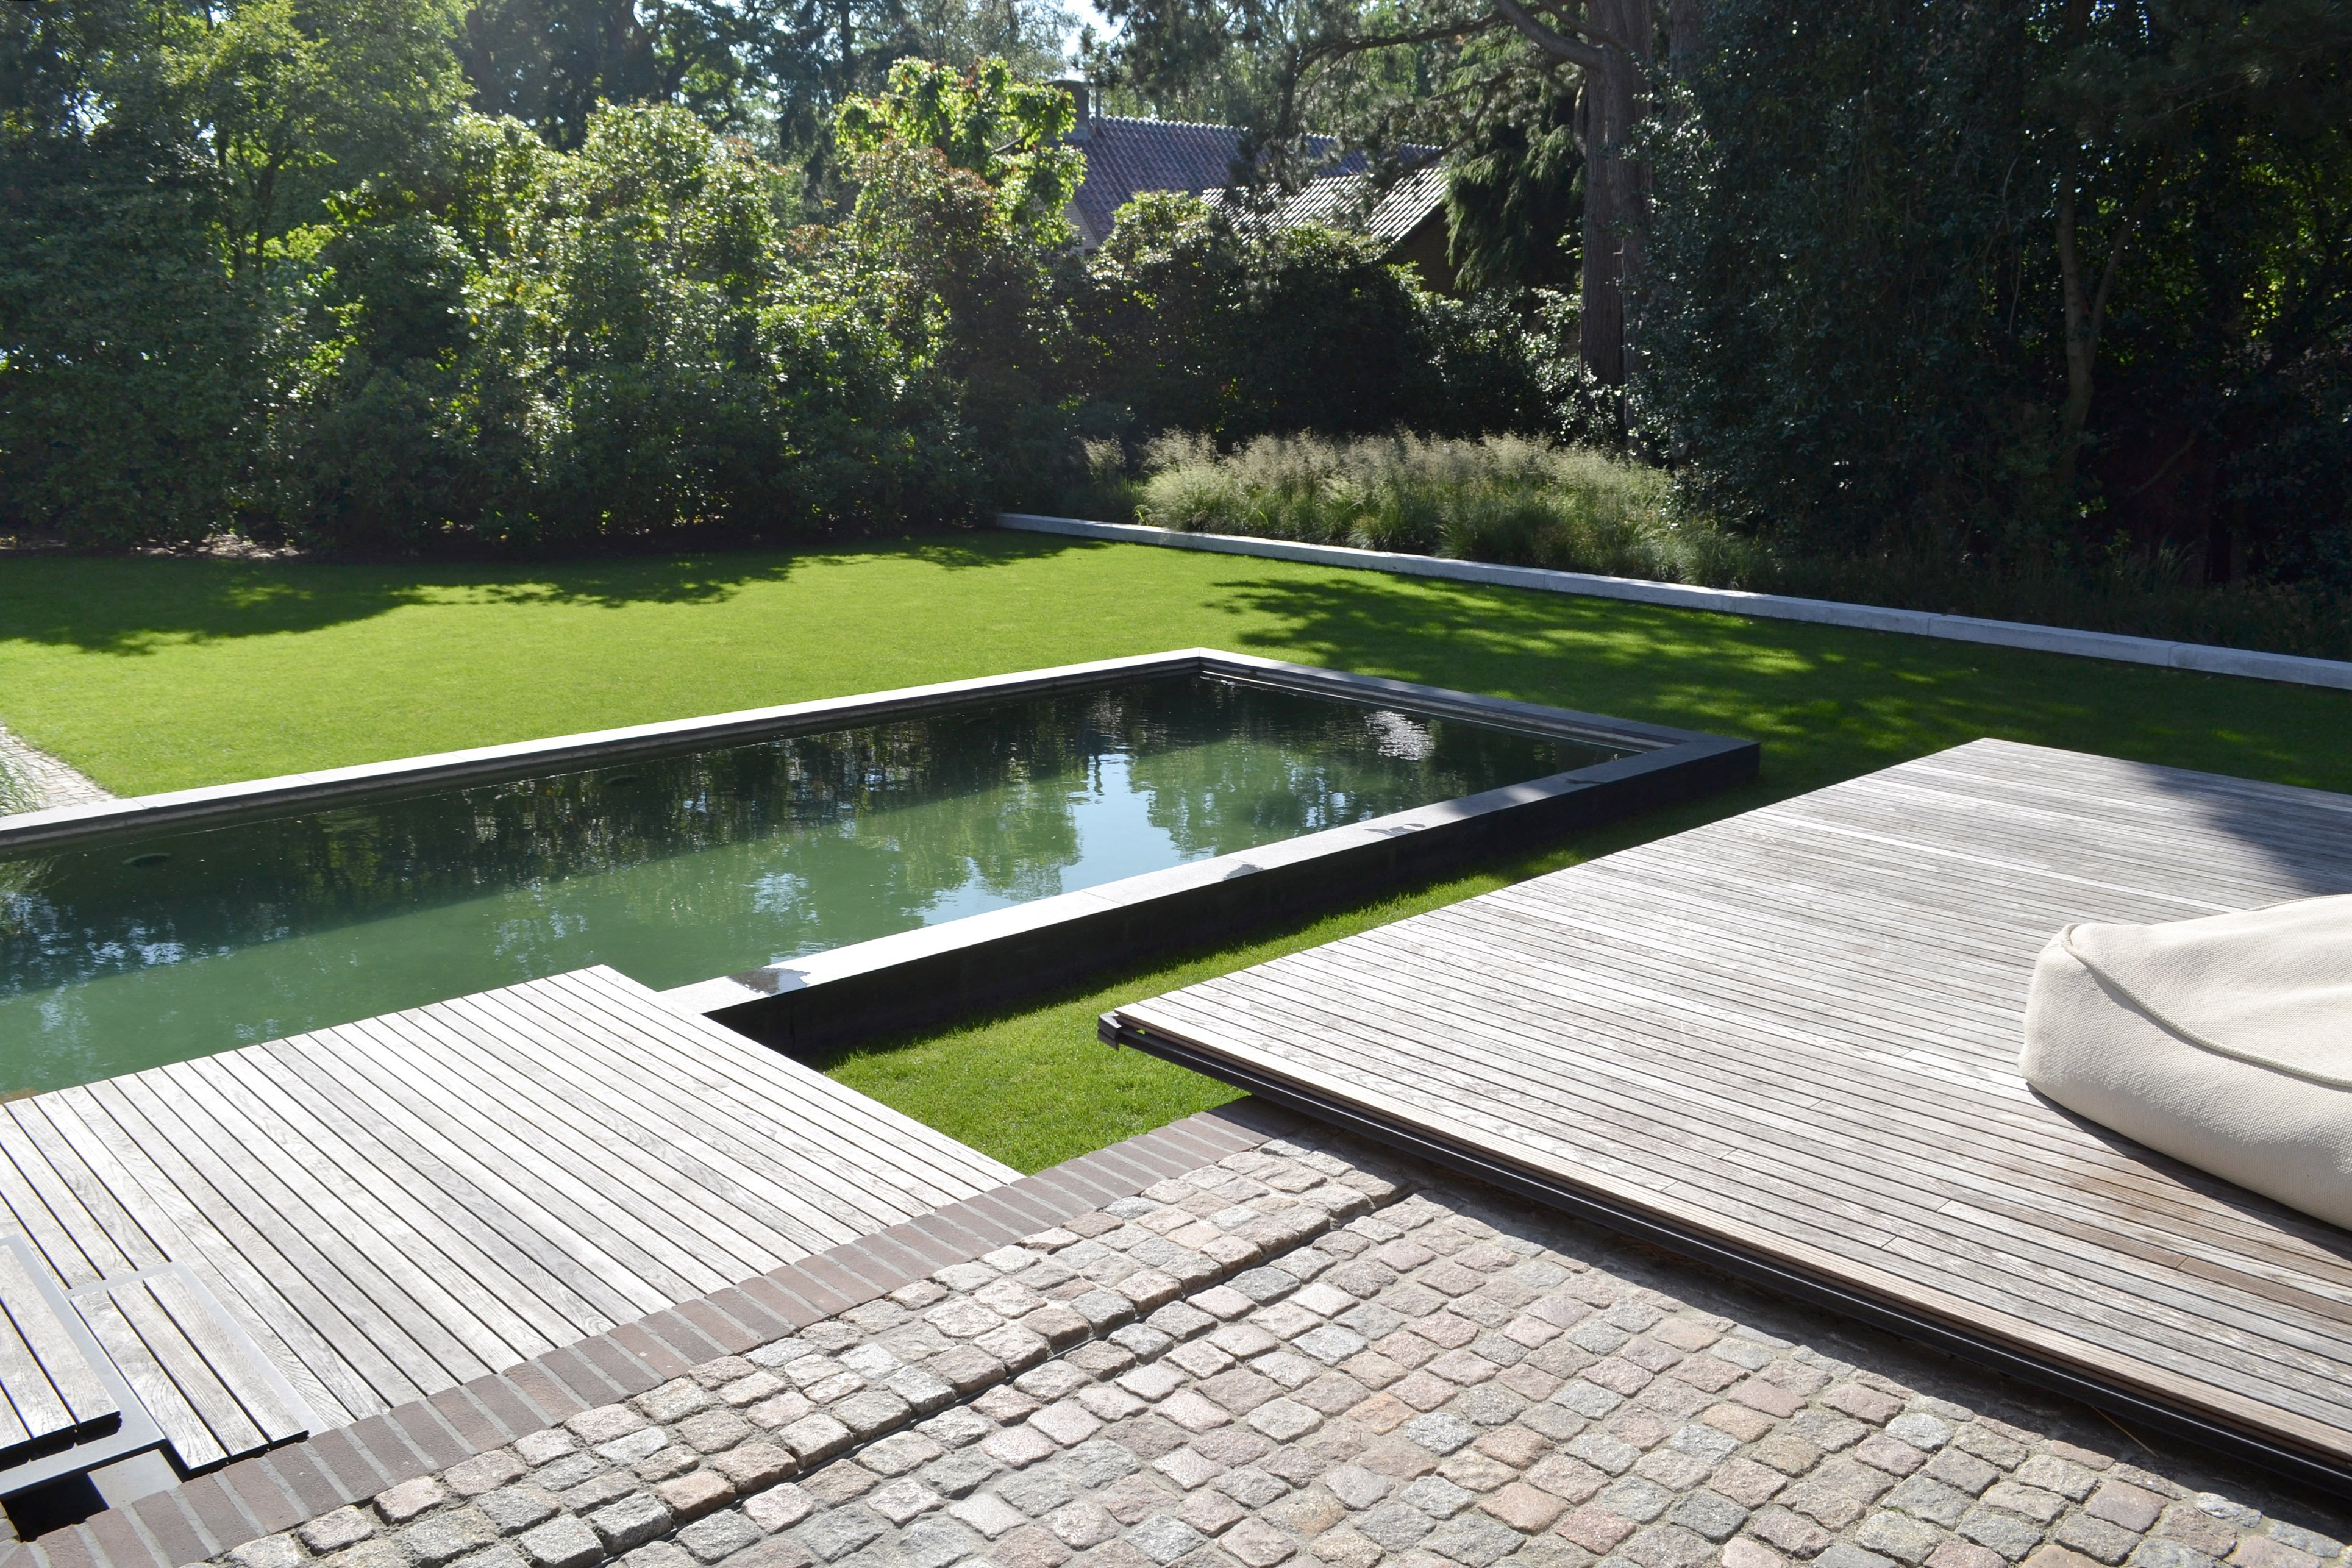 Terraces floating as thin sheets above the garden and the pool